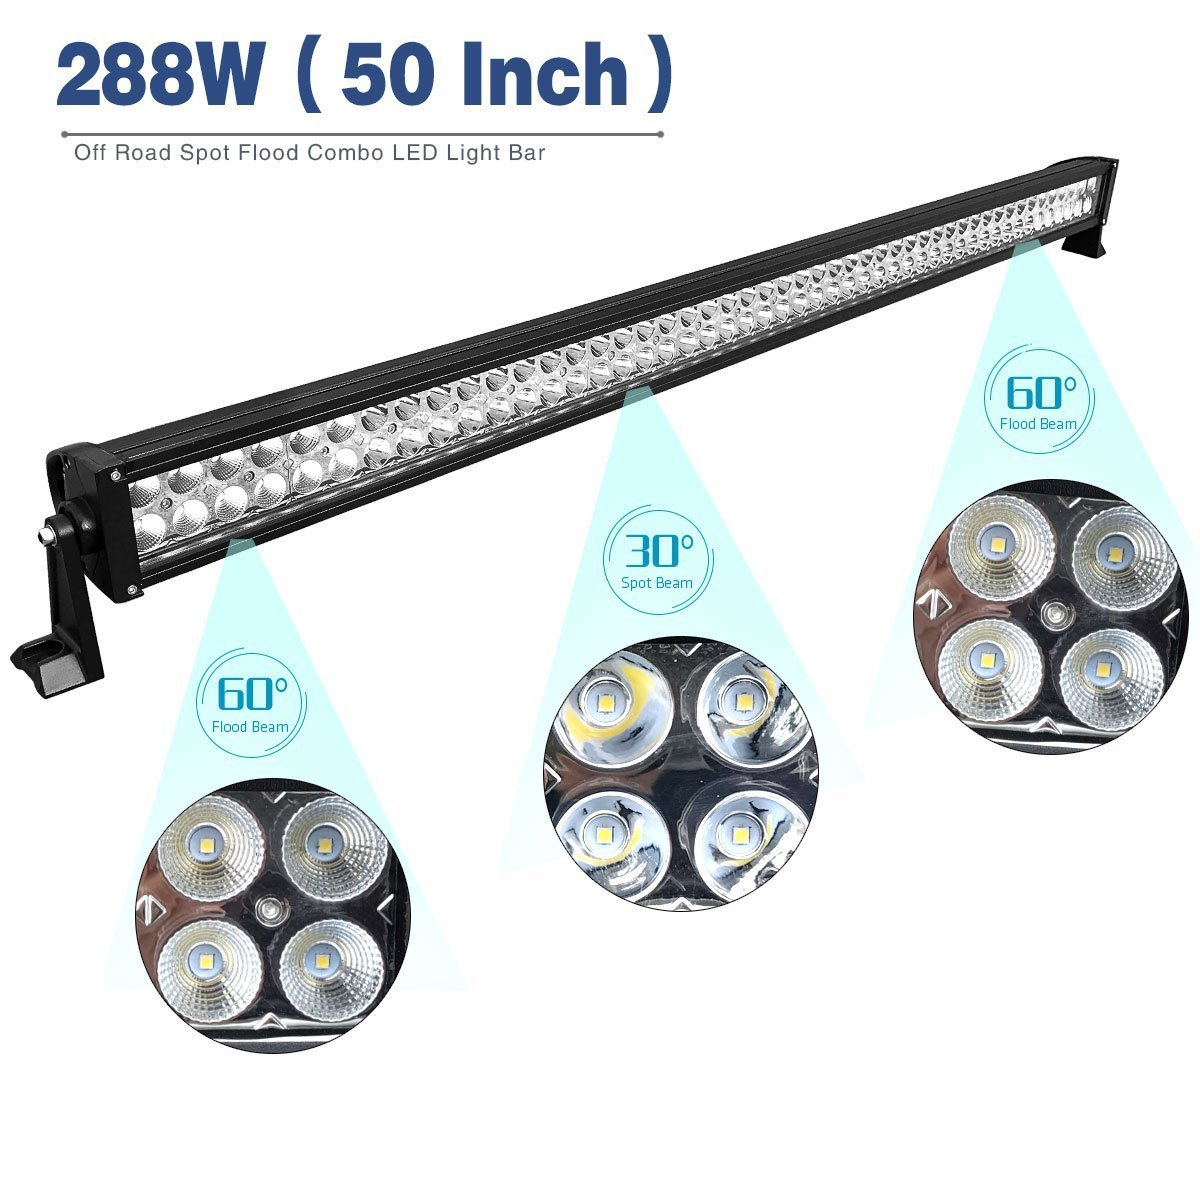 Led Light Bar Yitamotor 50 Inch Combo 2 X 4 Details About Spot Flood Work Driving Wiring Button On Off 18w Pods With Harness Roof Mounting Brackets Compatible For